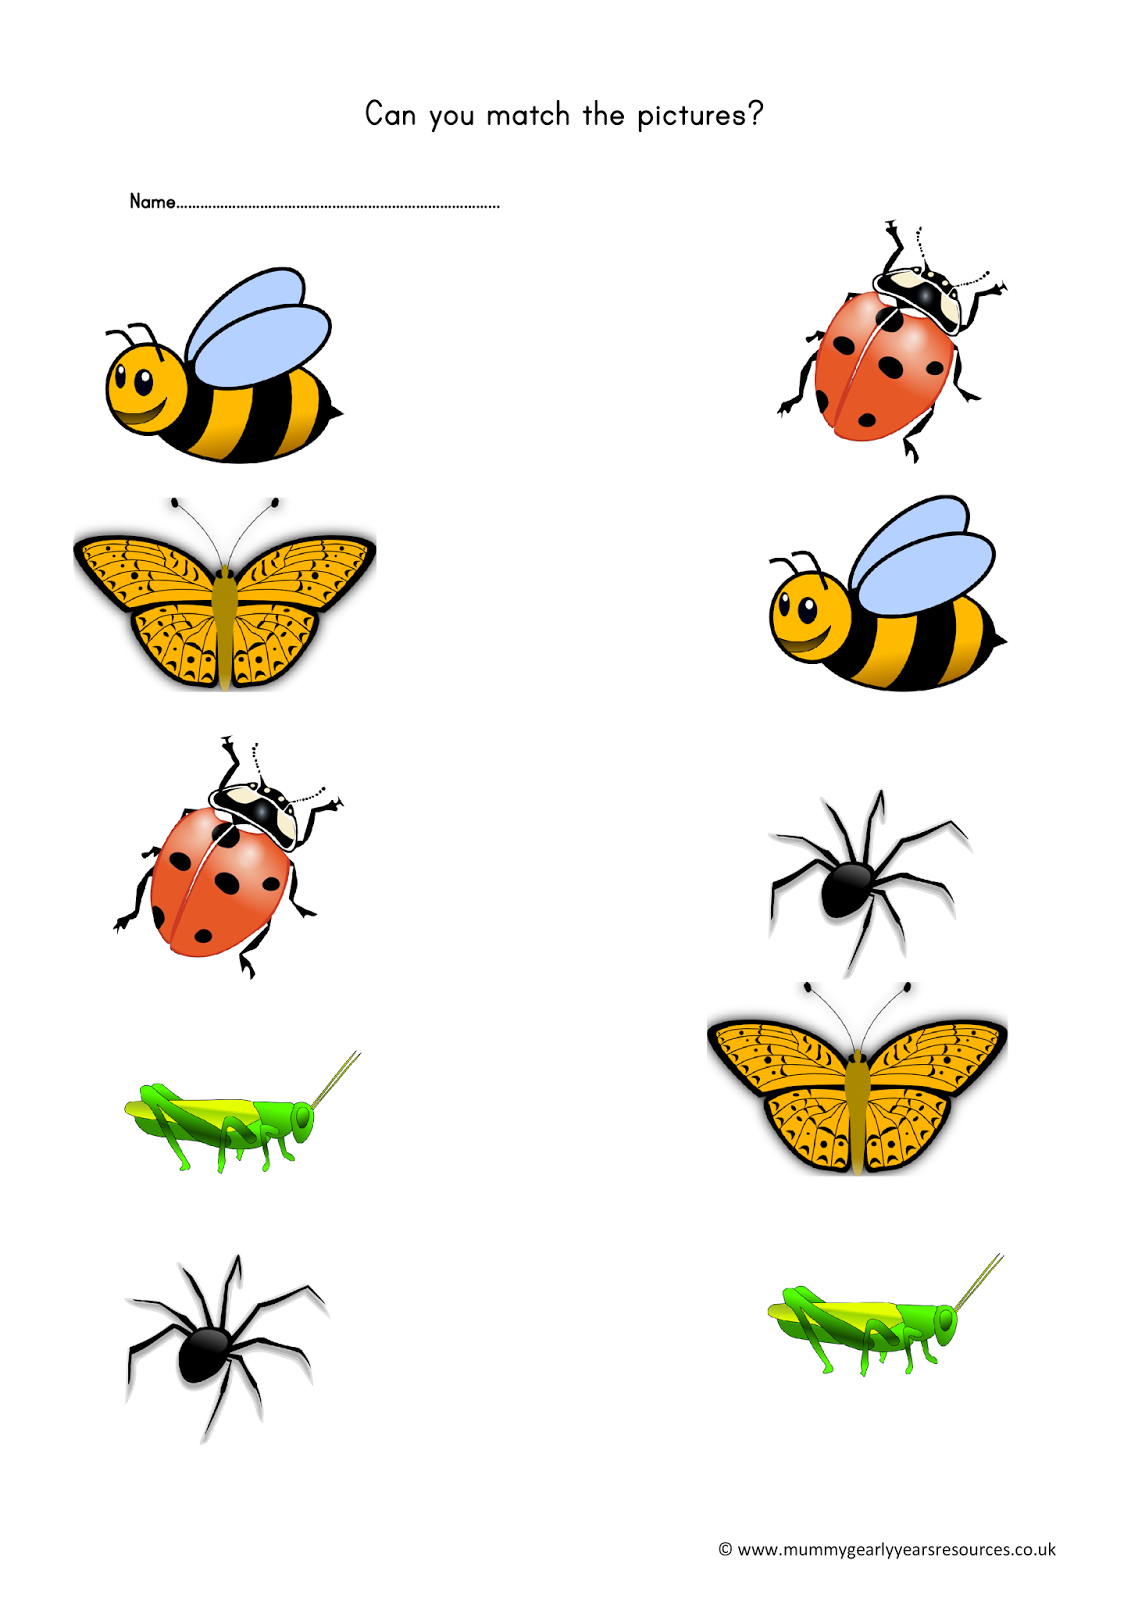 Mini beasts matching pictures. Handprint clipart childminder